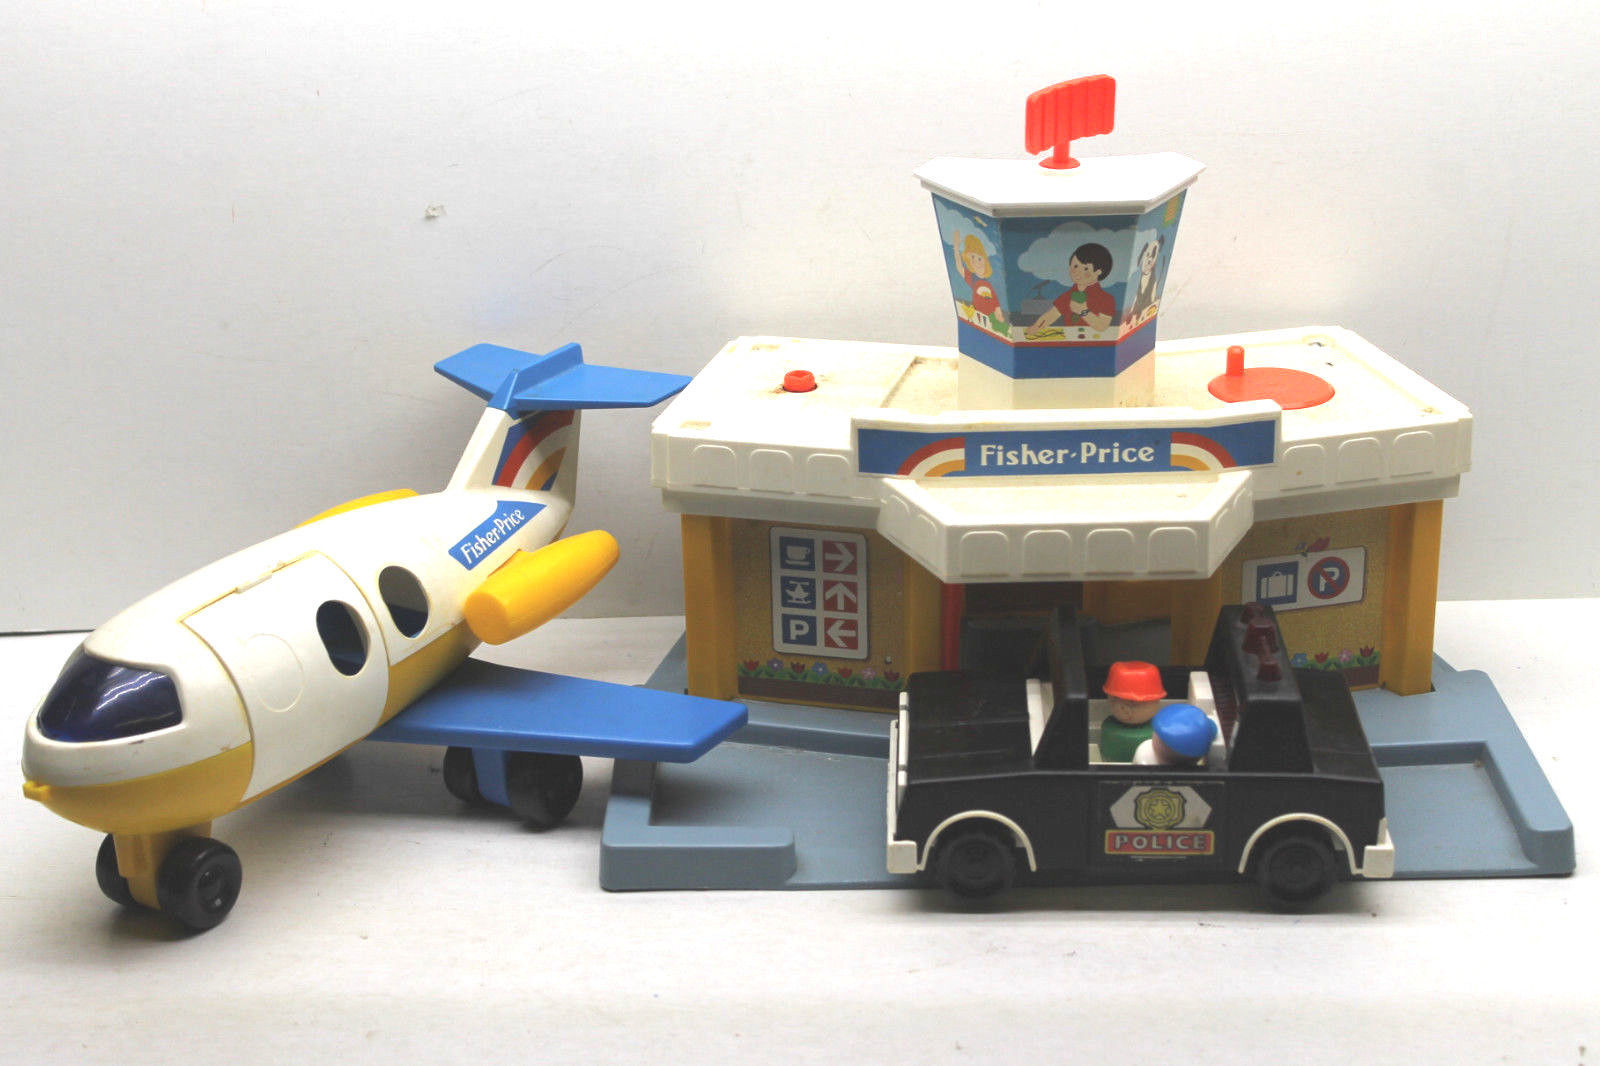 Wooden Building Toy Vintage Wooden Little People Styled Plane Rare Wooden Plane Toy